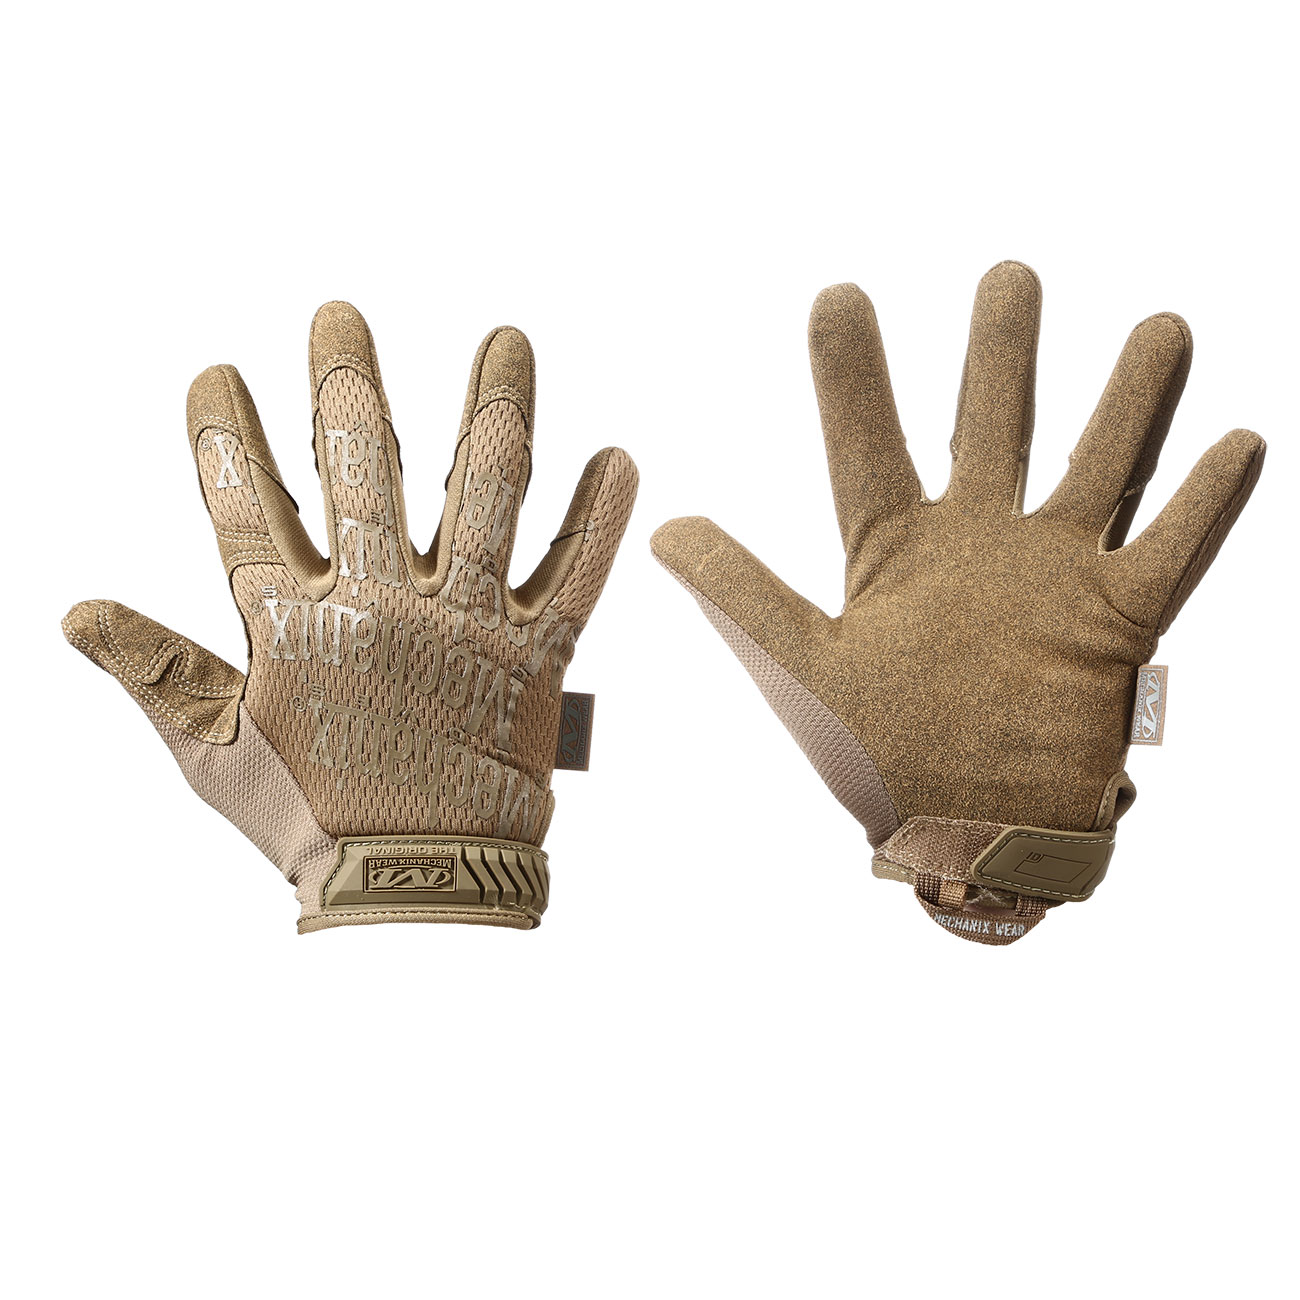 Mechanix Wear Original Handschuhe coyote 0